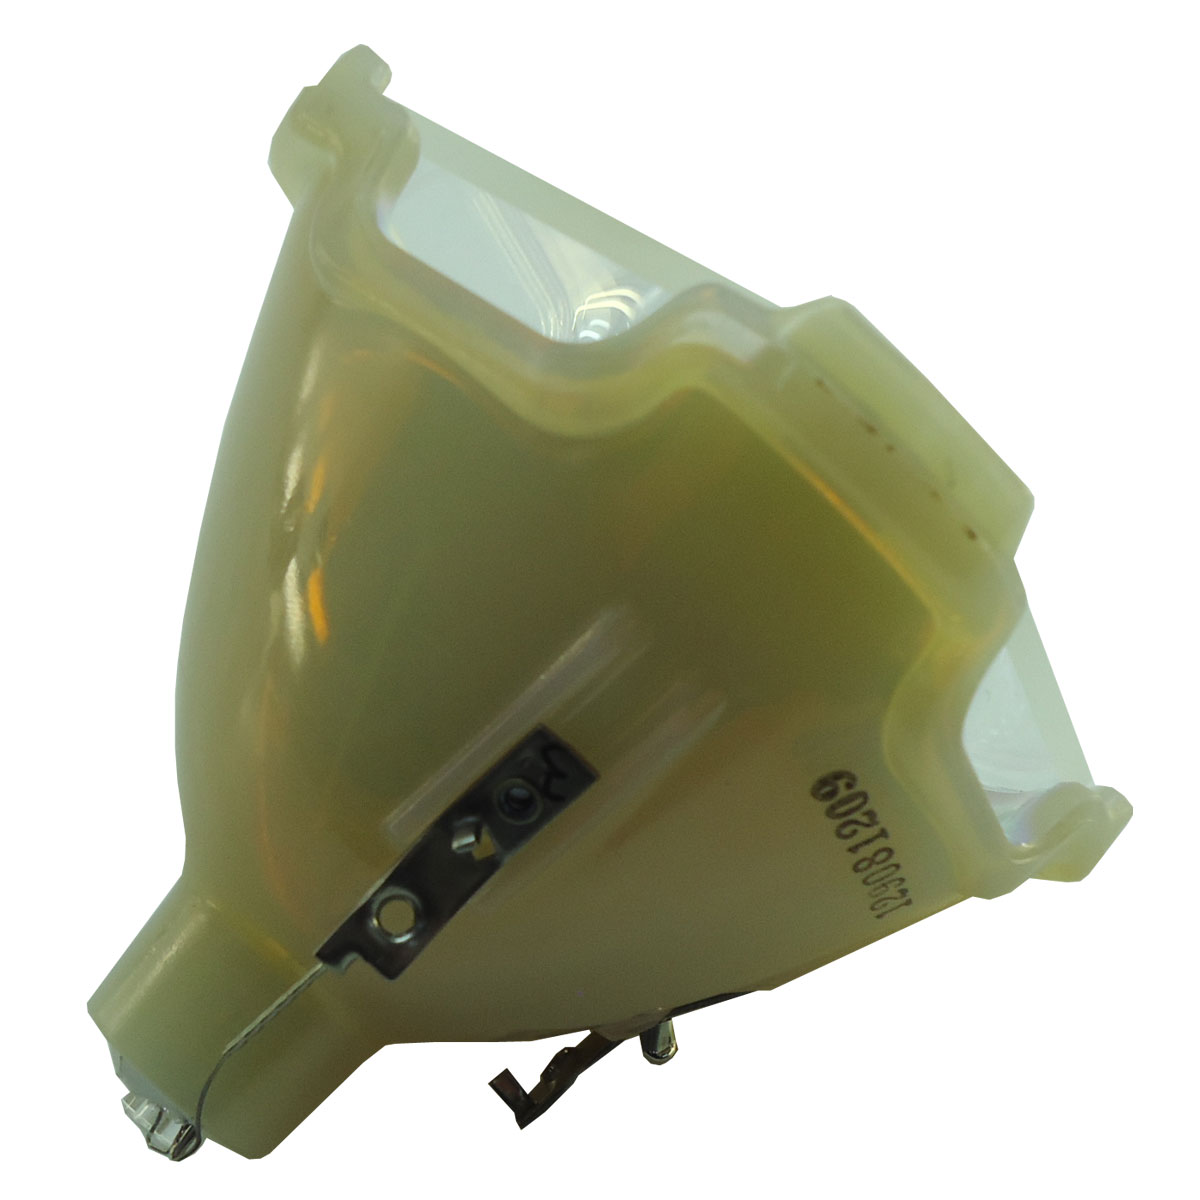 Original Philips Projector Replacement Lamp for Sanyo PLC-XF46